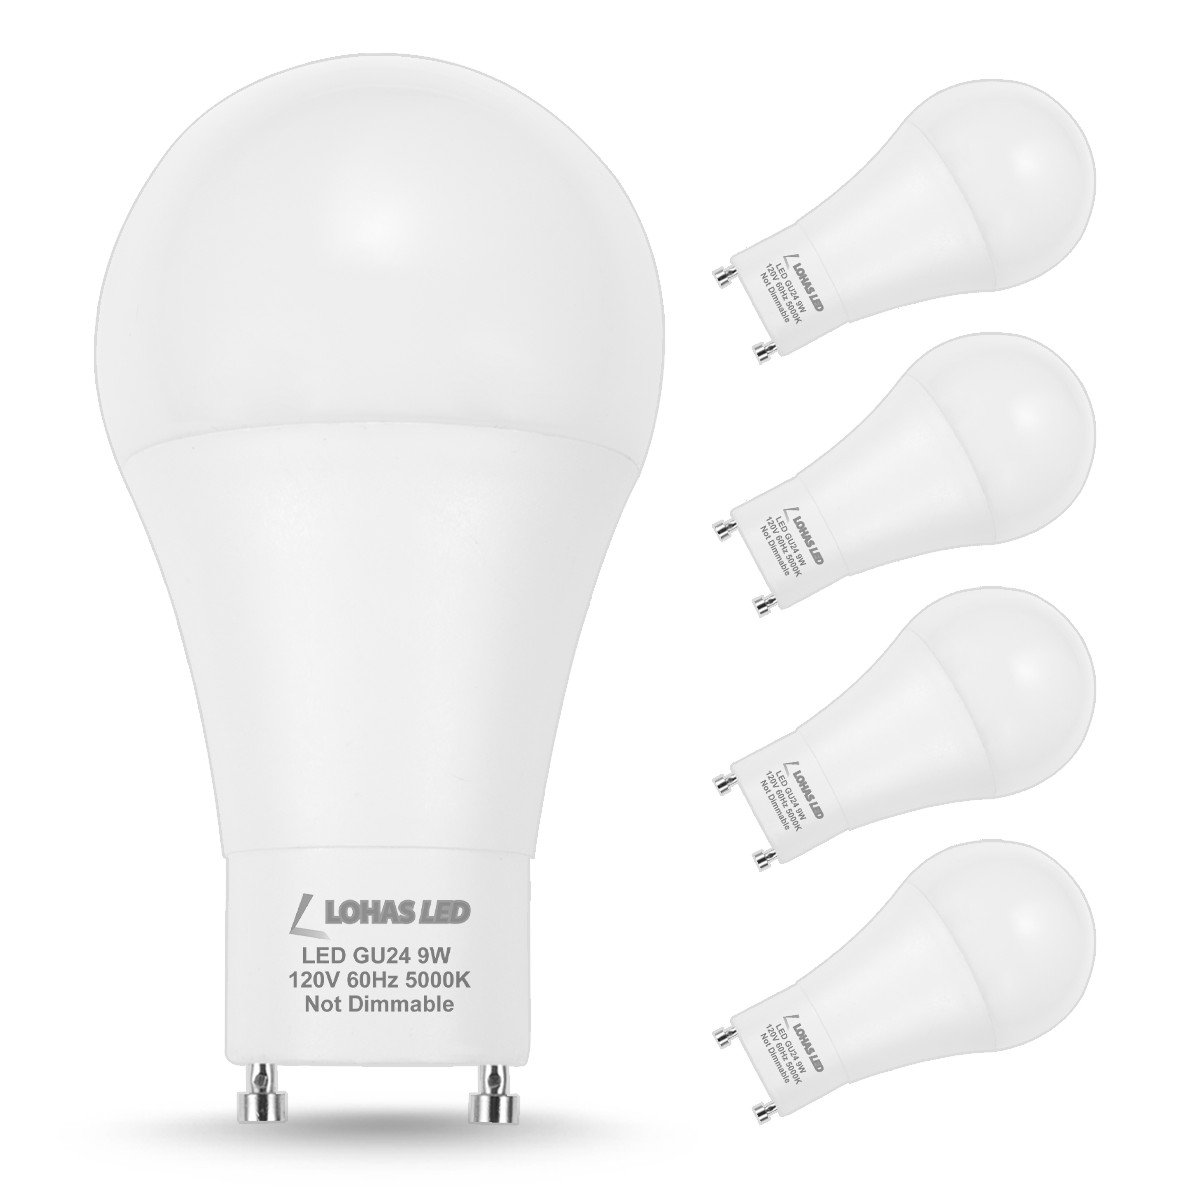 LOHAS GU24 Bulb, A19 LED Bulb 60w Equivalent, 9W LED 5000k Daylight Bulbs, Non-Dimmable Lights for Home, 240 Degree Beam Angle, 810LM LED Lamp Replacing CFL Ceiling light, LED Light Bulbs (4Pack)